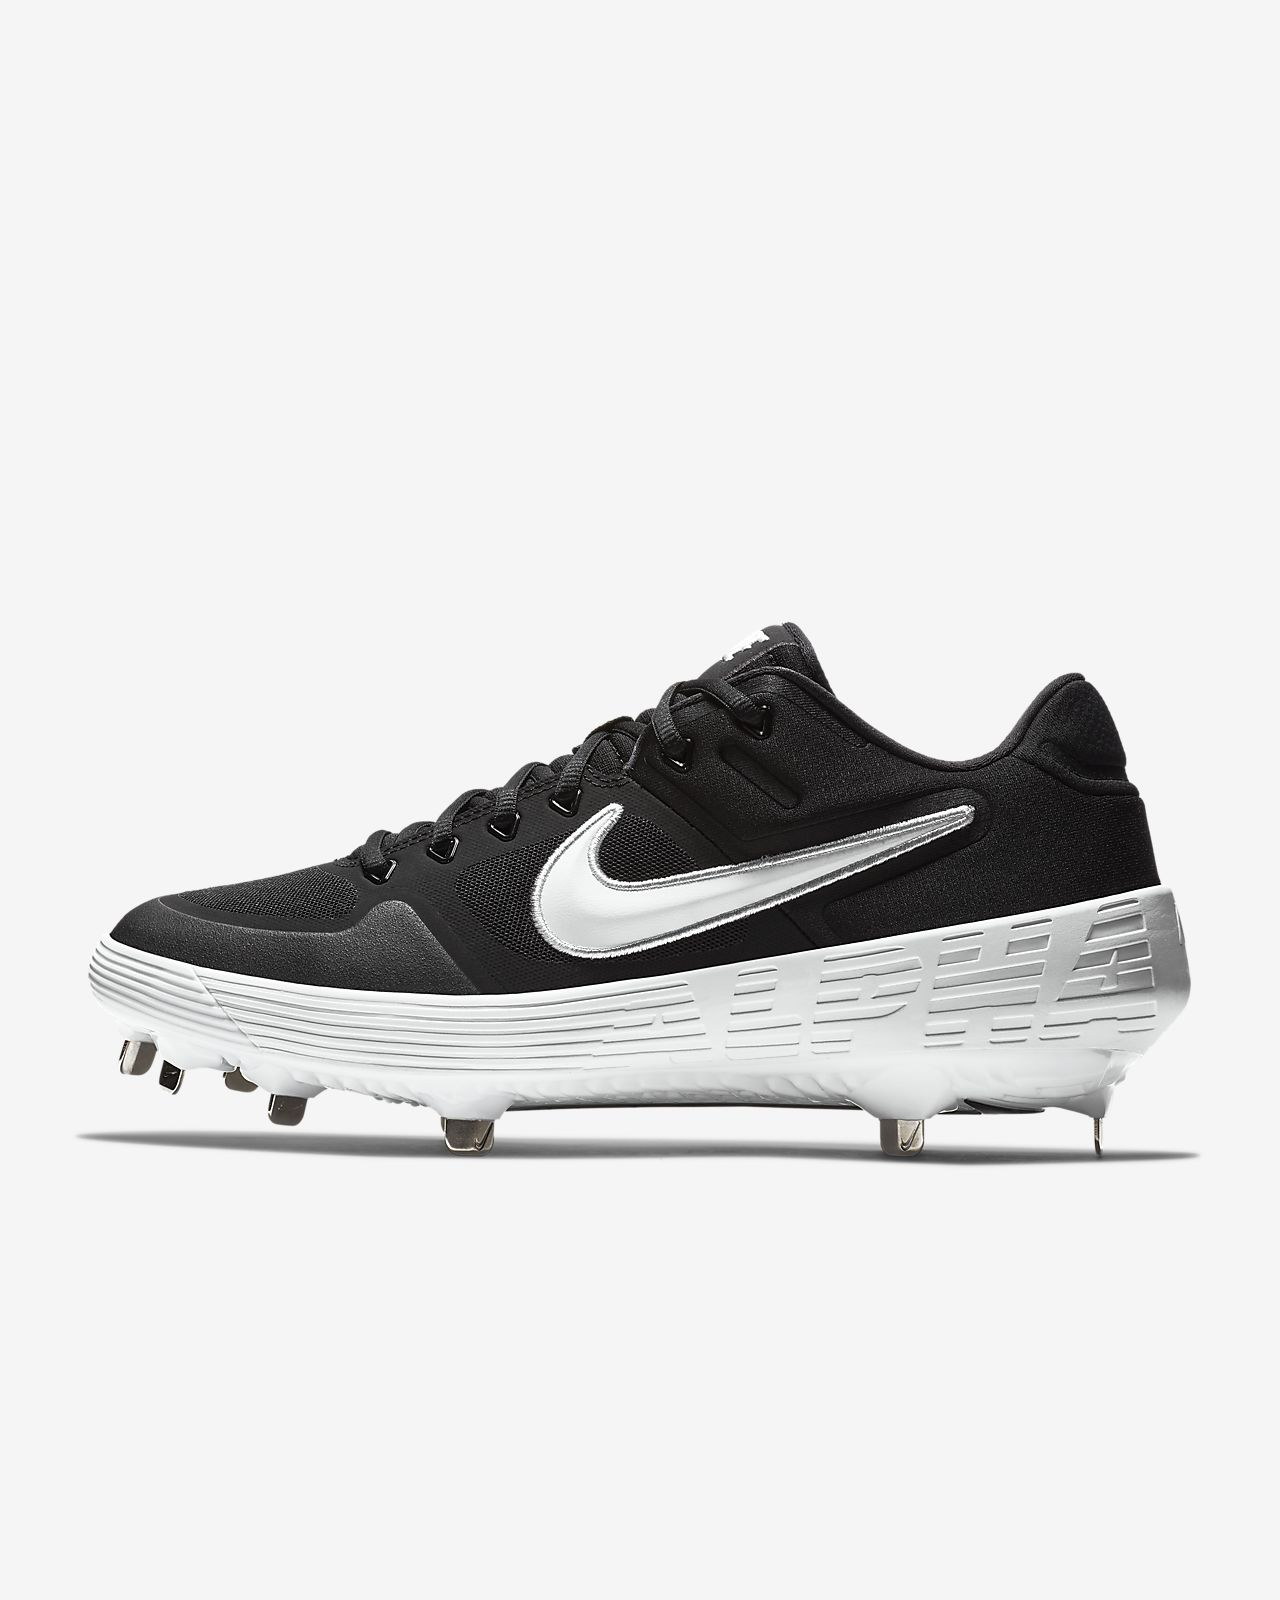 b53b641fd Nike Alpha Huarache Elite 2 Low Baseball Cleat. Nike.com